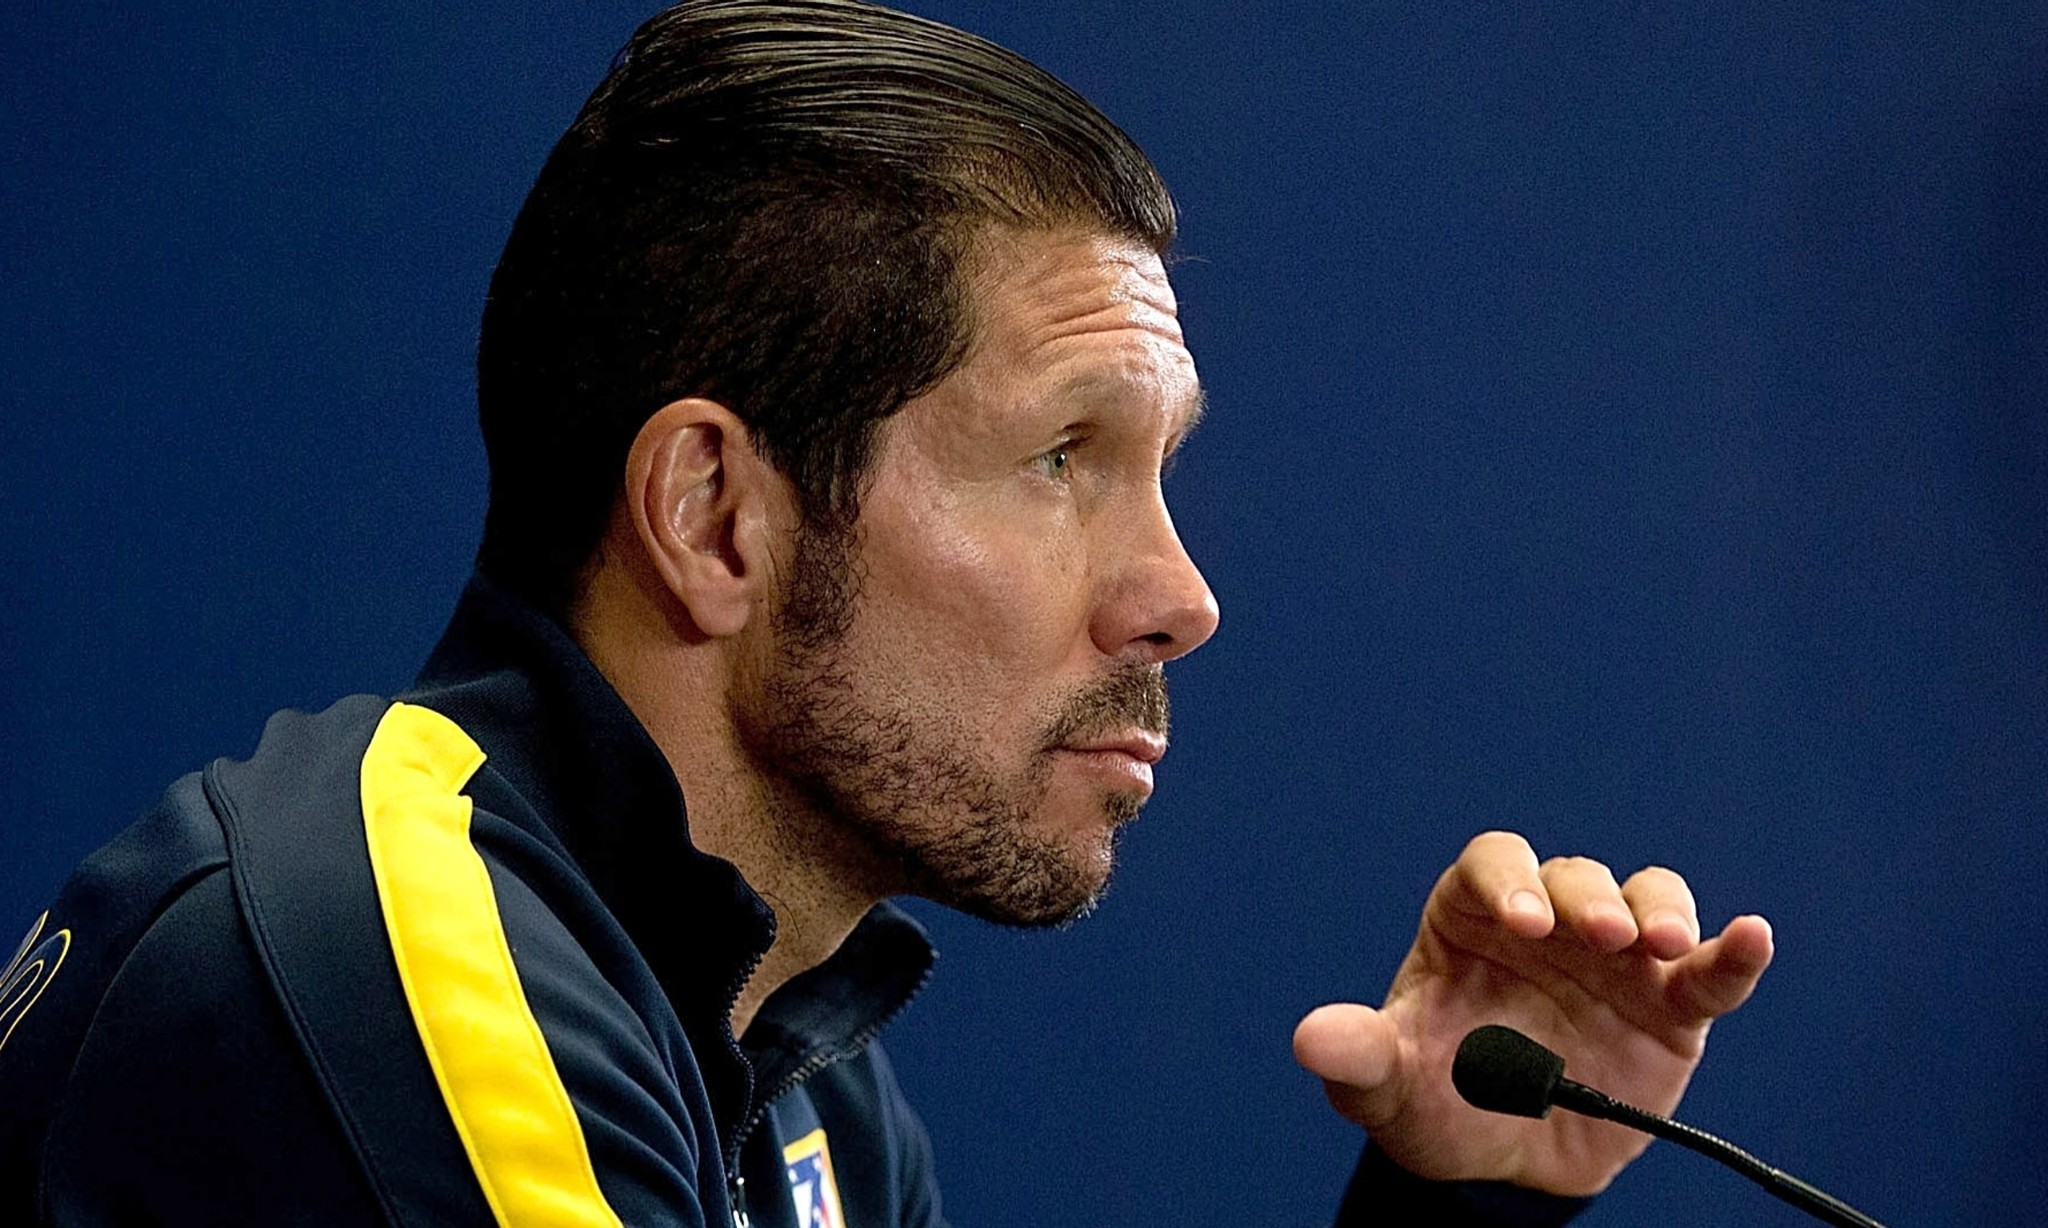 Champions League: Atlético physicality will give Real run for their money